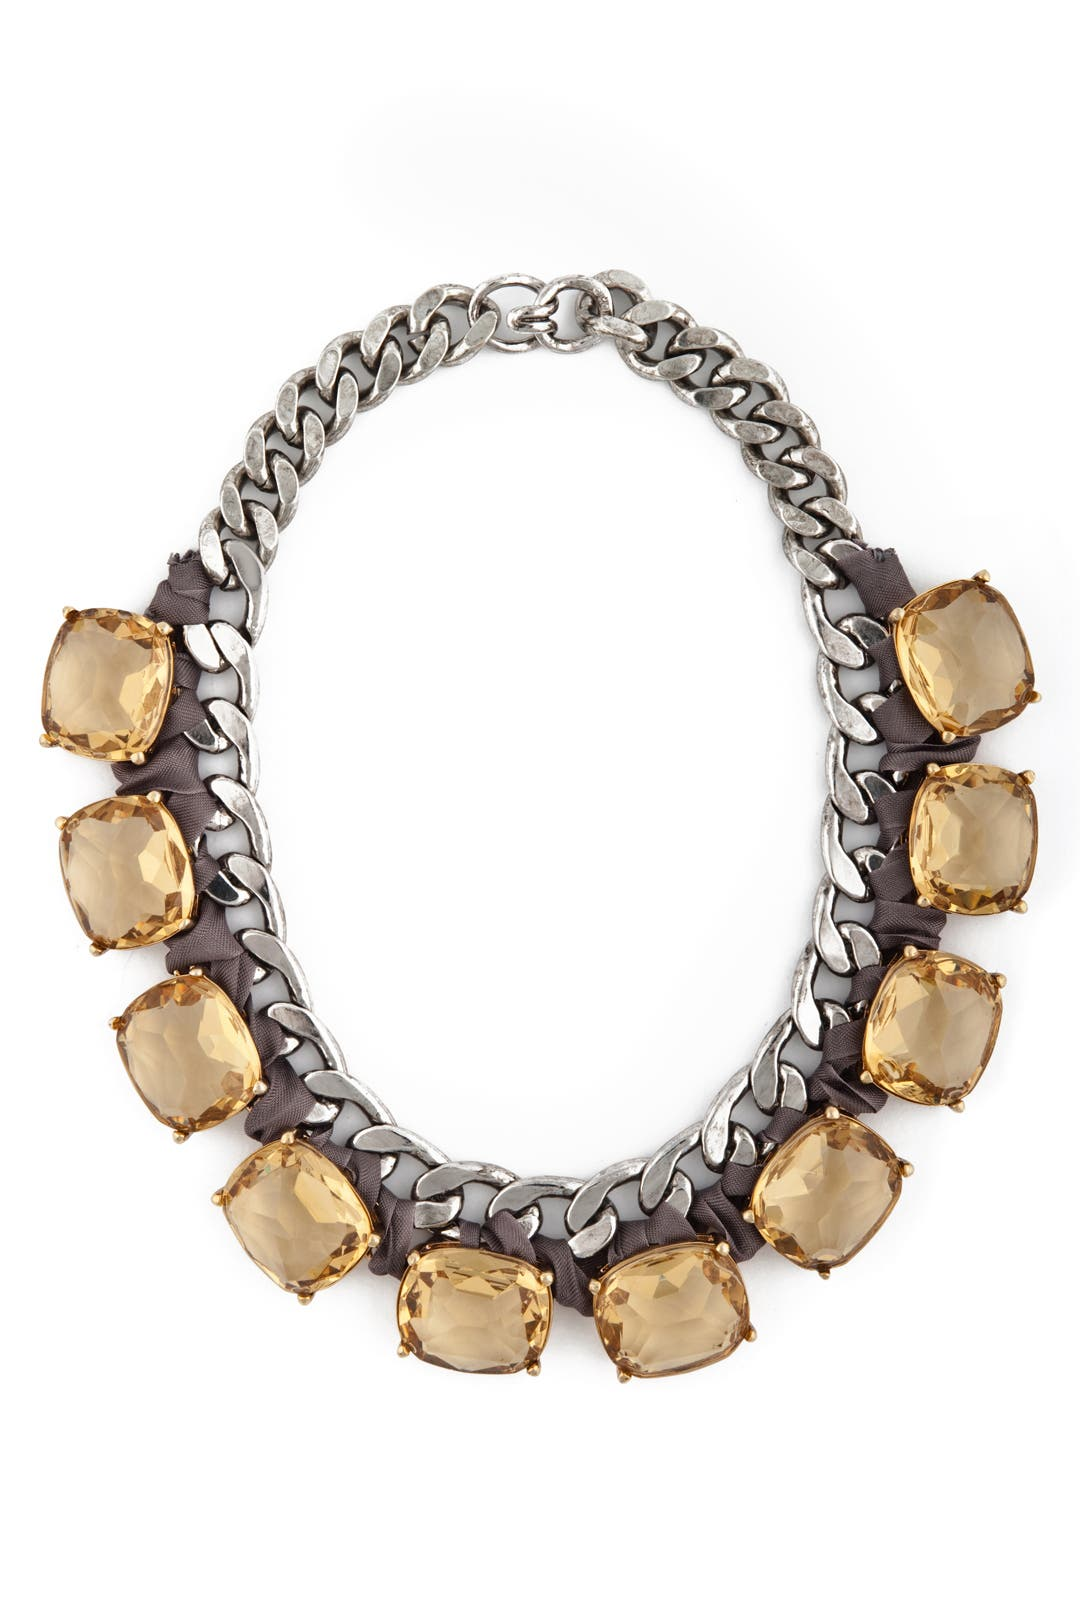 Champagne and Chains Necklace by Ciner